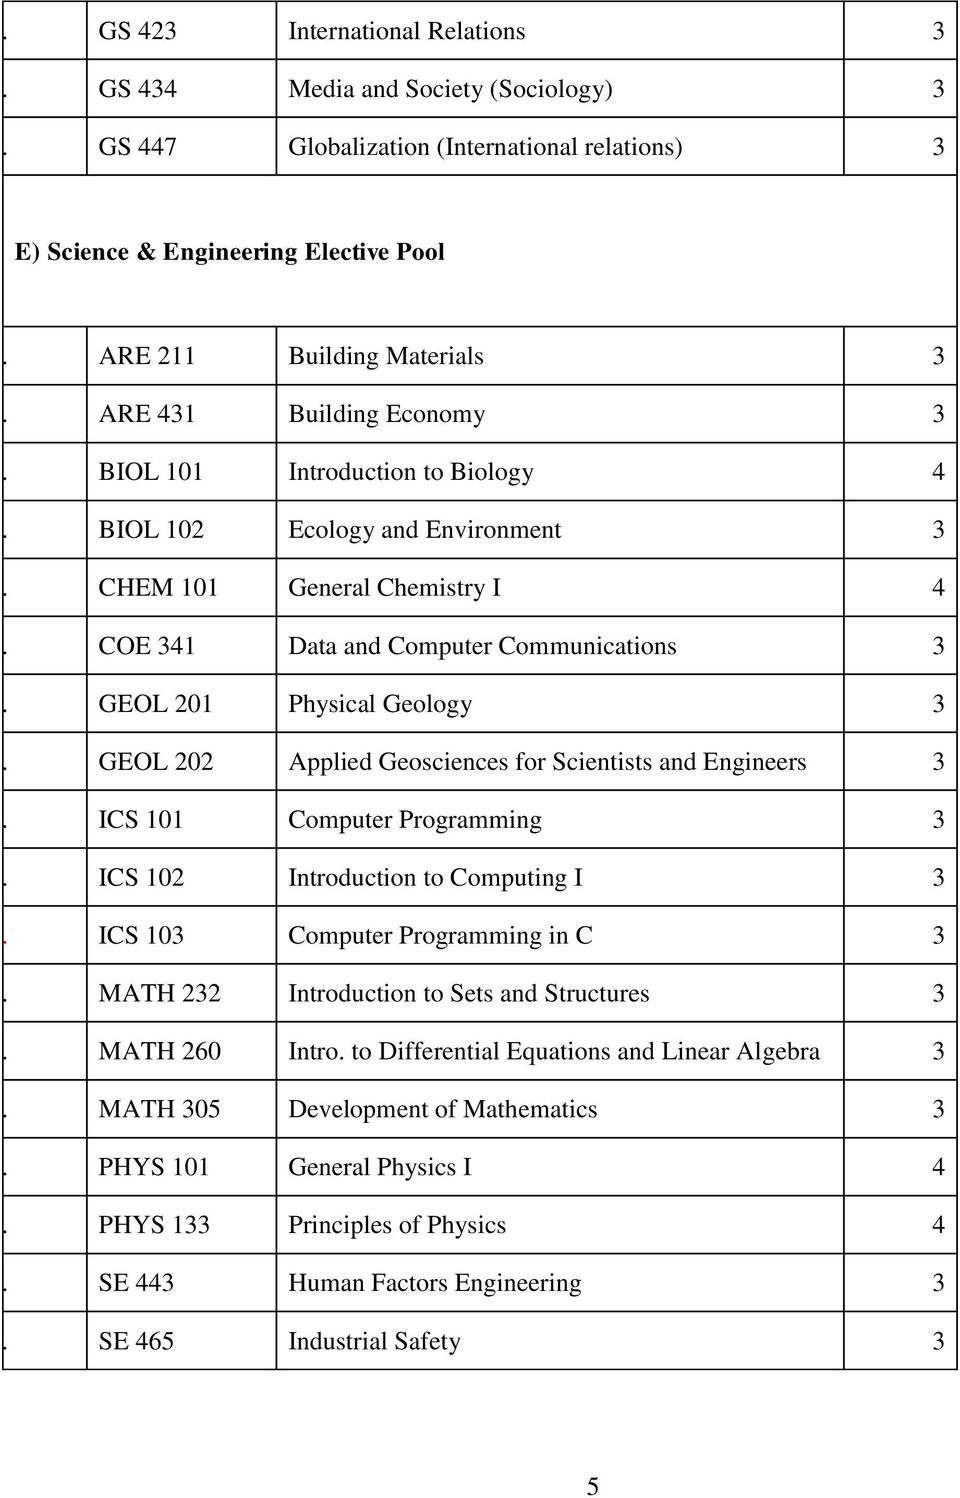 COE 341 Data and Computer Communications 3 60. GEOL 201 Physical Geology 3 61. GEOL 202 Applied Geosciences for Scientists and Engineers 3 62. ICS 101 Computer Programming 3 63.